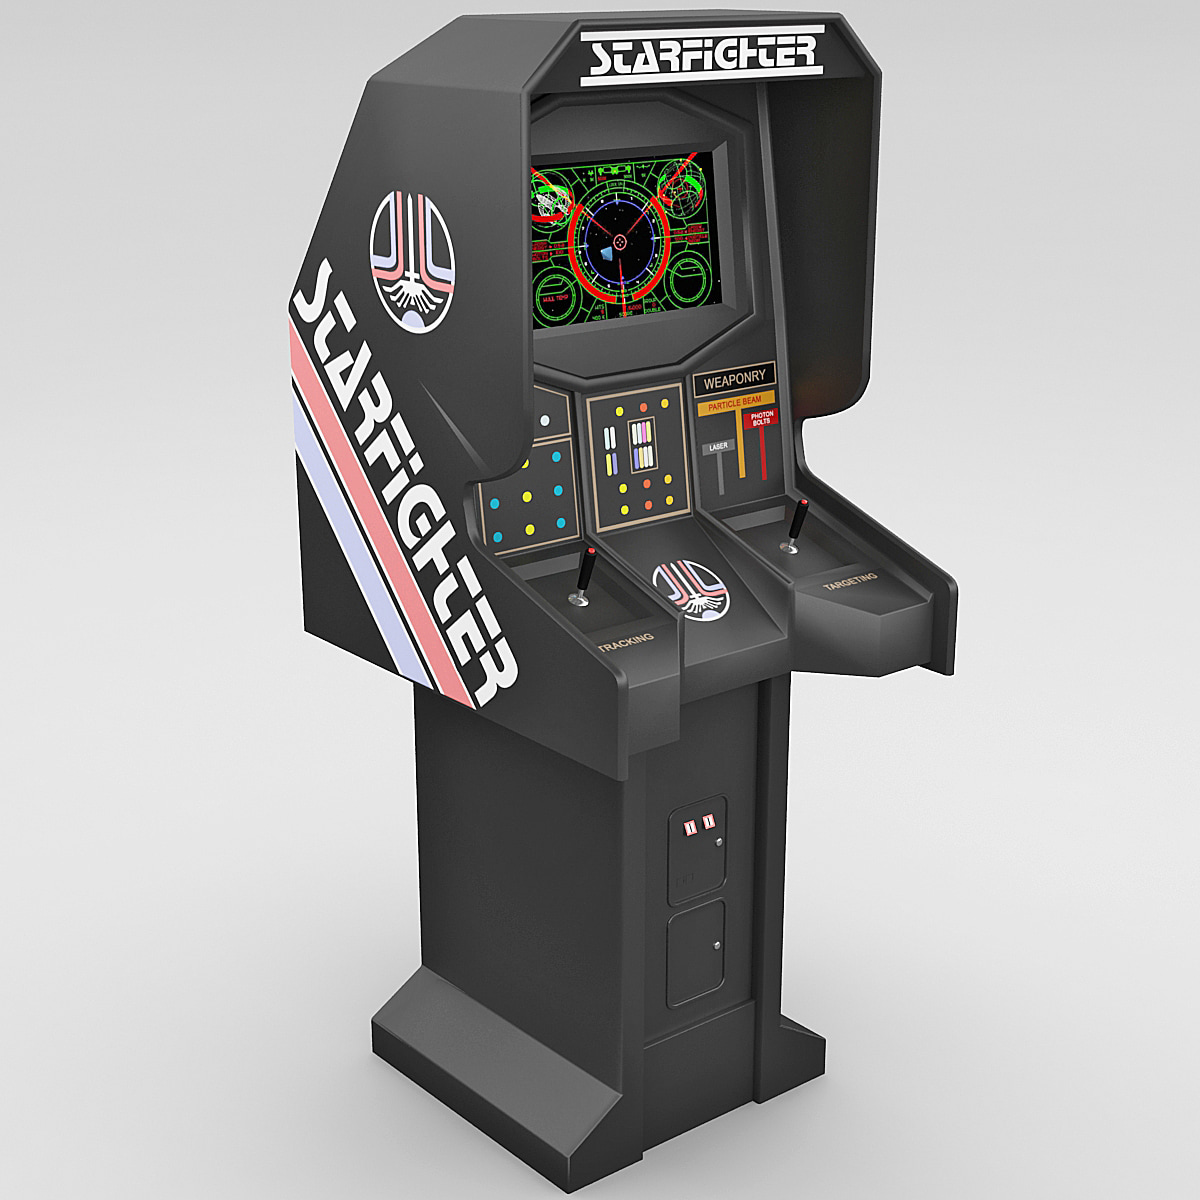 Arcade_Game_Starfighter_001.jpg